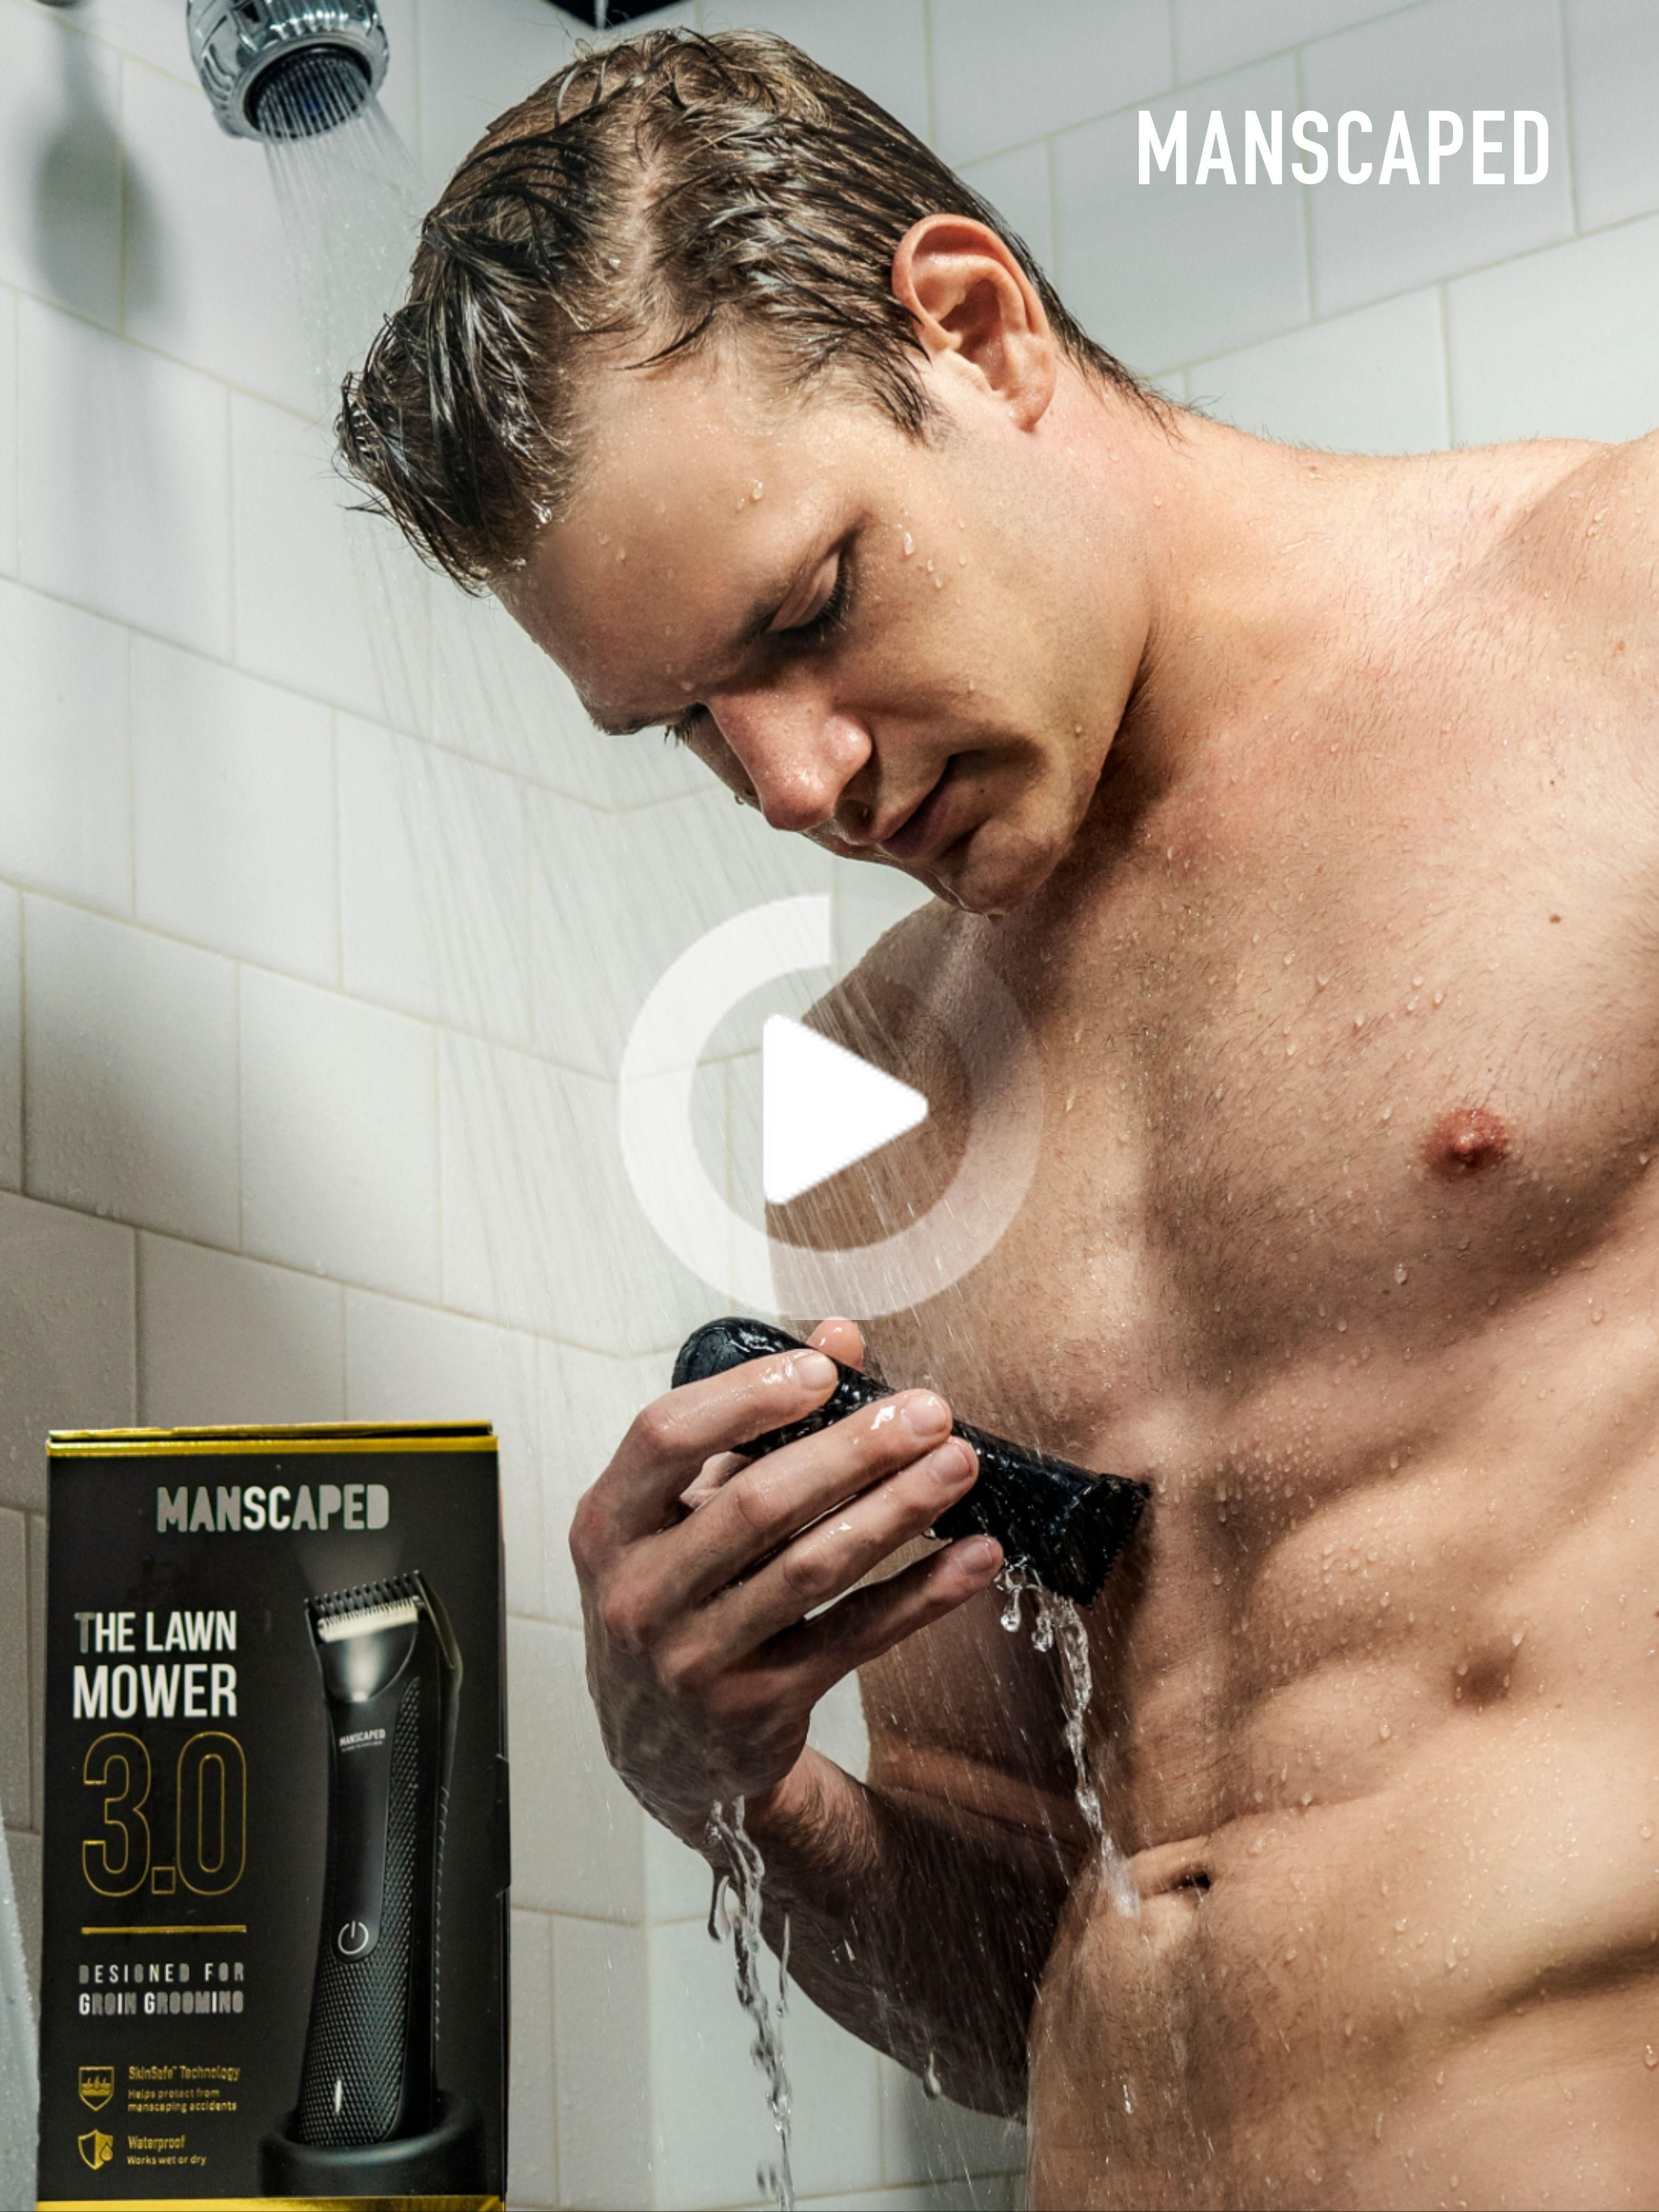 Styles pictures manscaping Hilarious photos